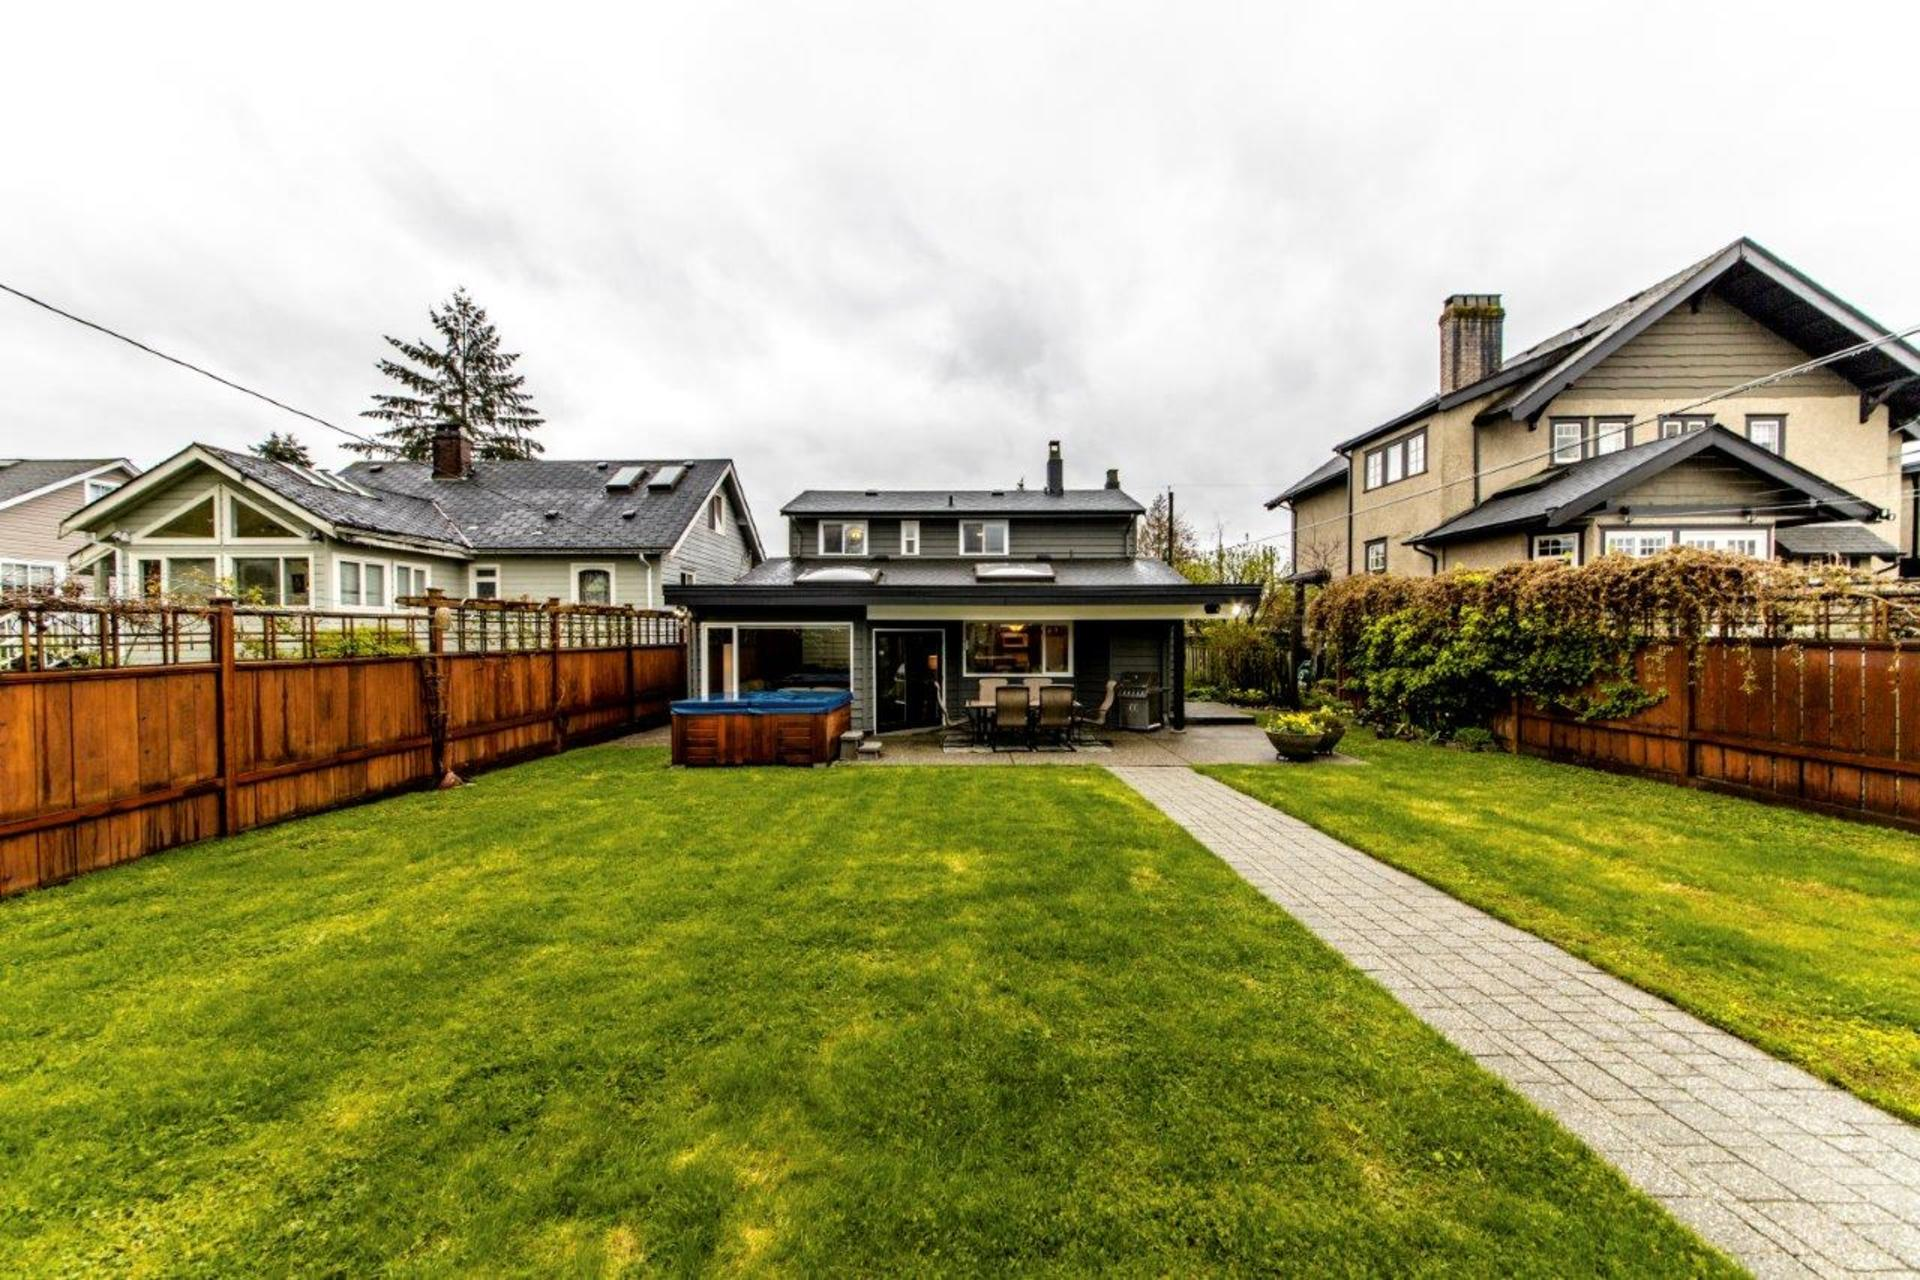 774e9-36 at 774 East 9th Street, Boulevard, North Vancouver